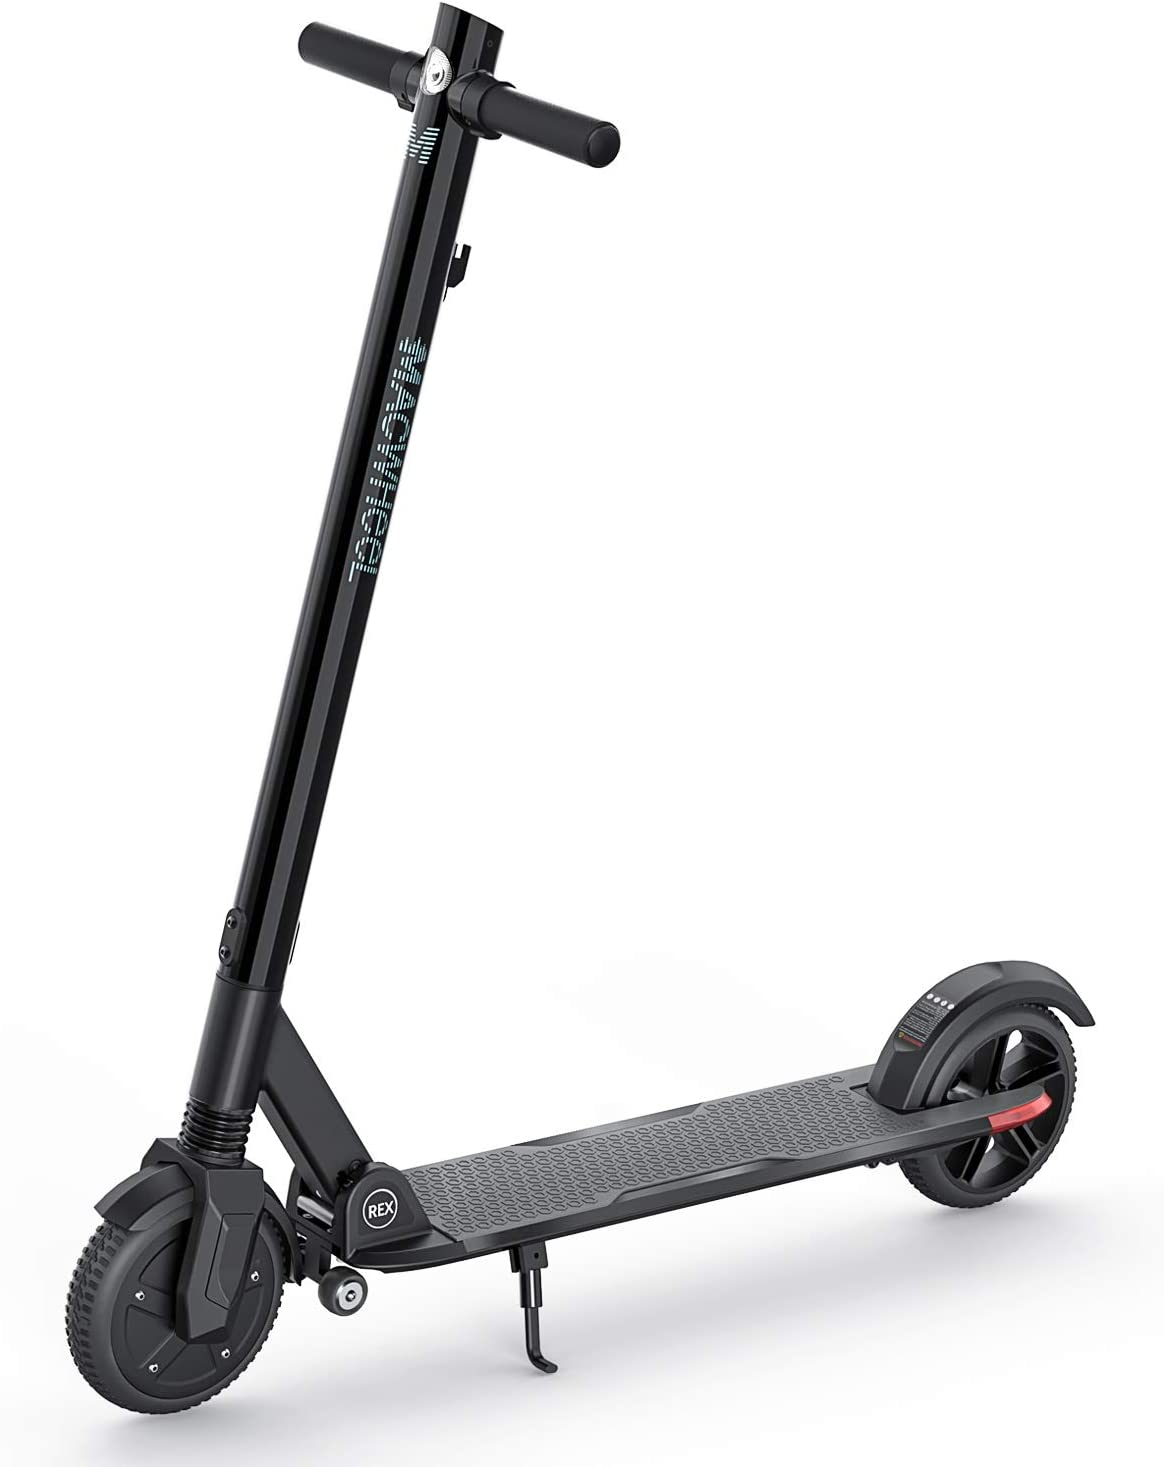 Macwheel X3 Portable and Folding Electric Scooter